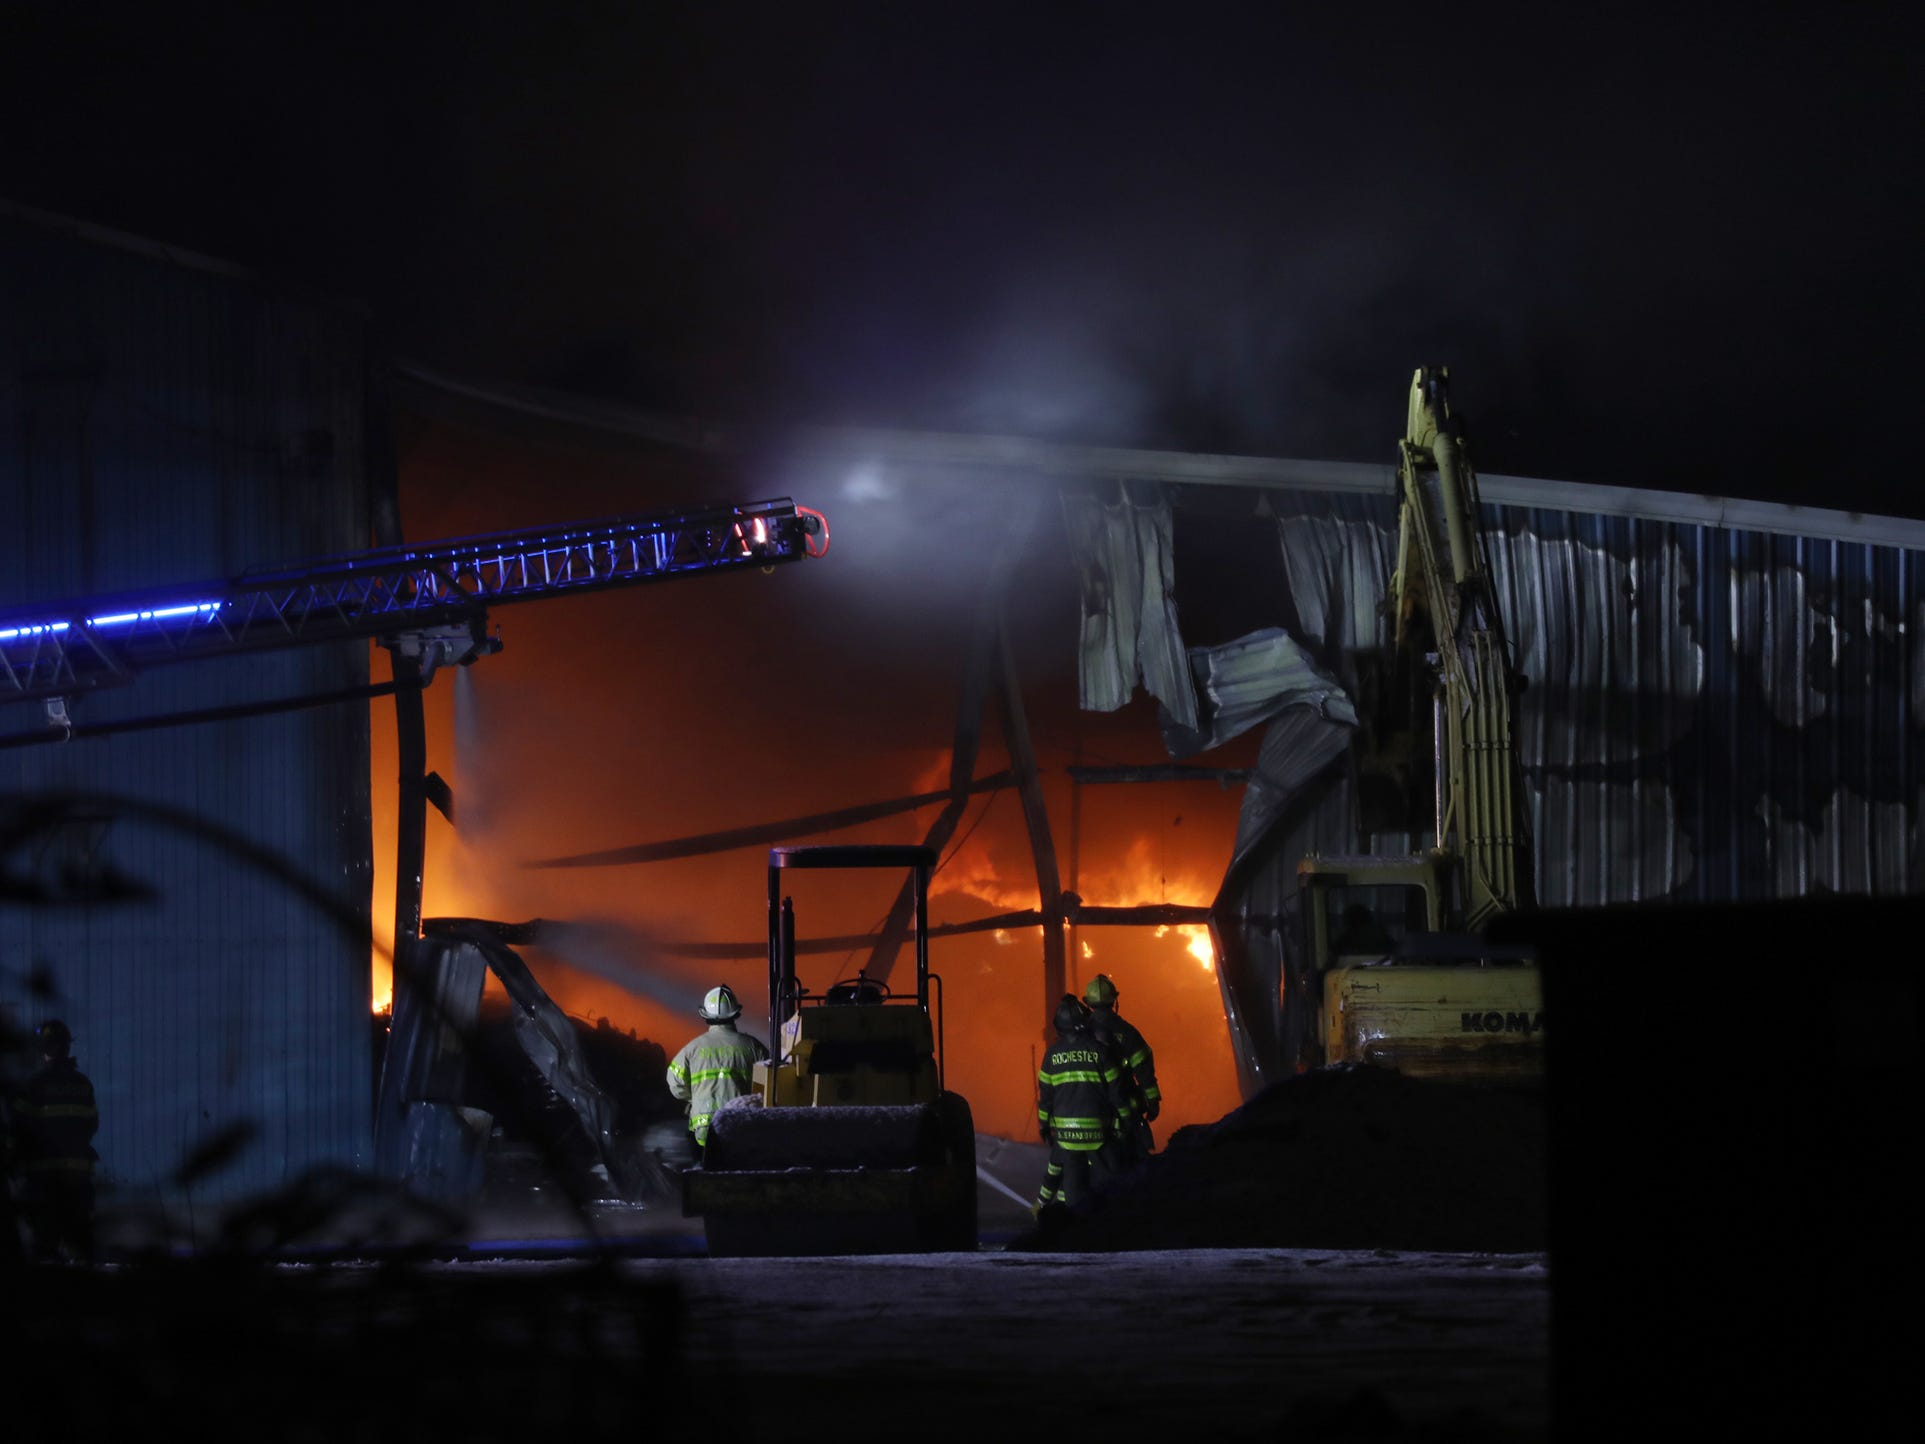 Premier Metals Group, a scrap metal processing business, operated the warehouse.